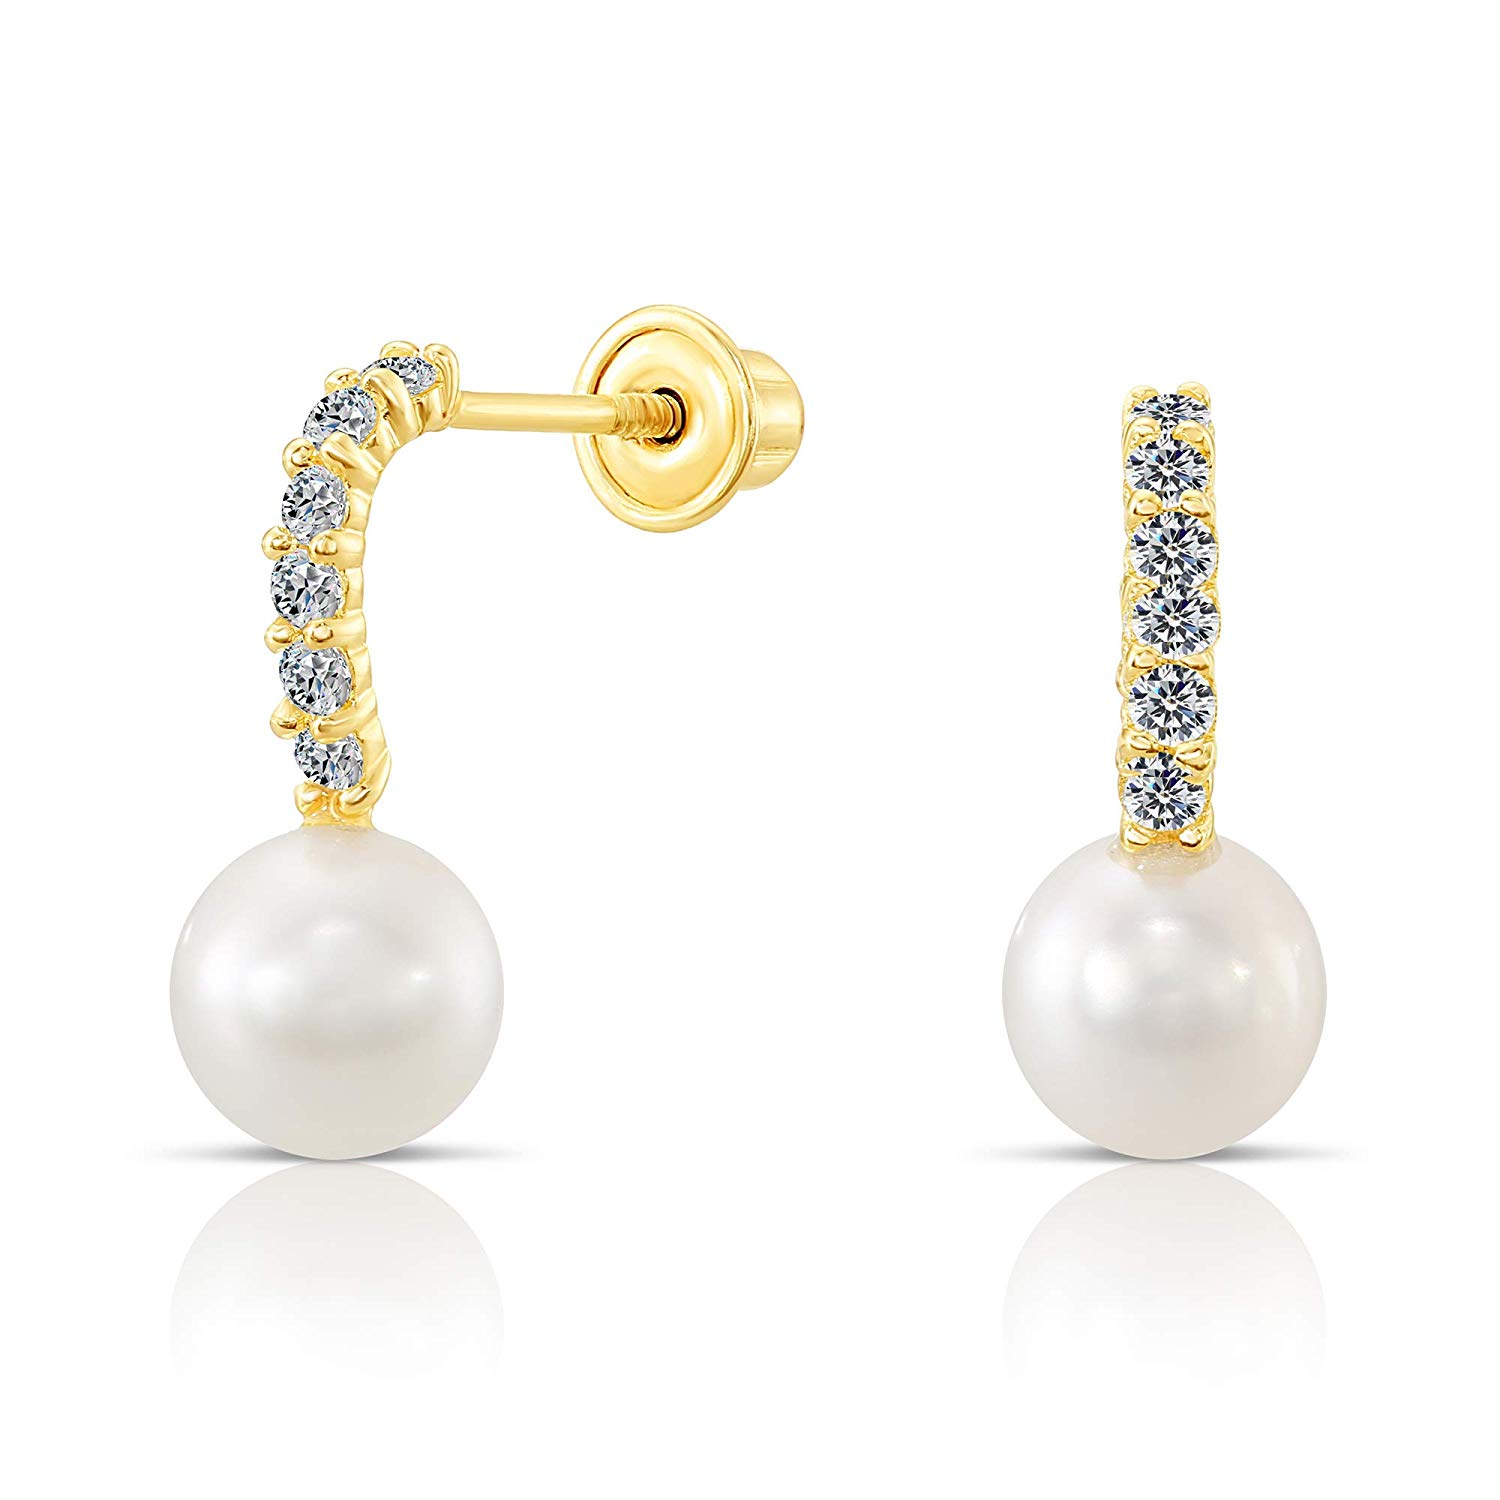 b845e112f Get Quotations · Tilo Jewelry 10k Yellow Gold Round Fresh Water Cultured  Pearl with Cubic Zirconia Stud Earrings with